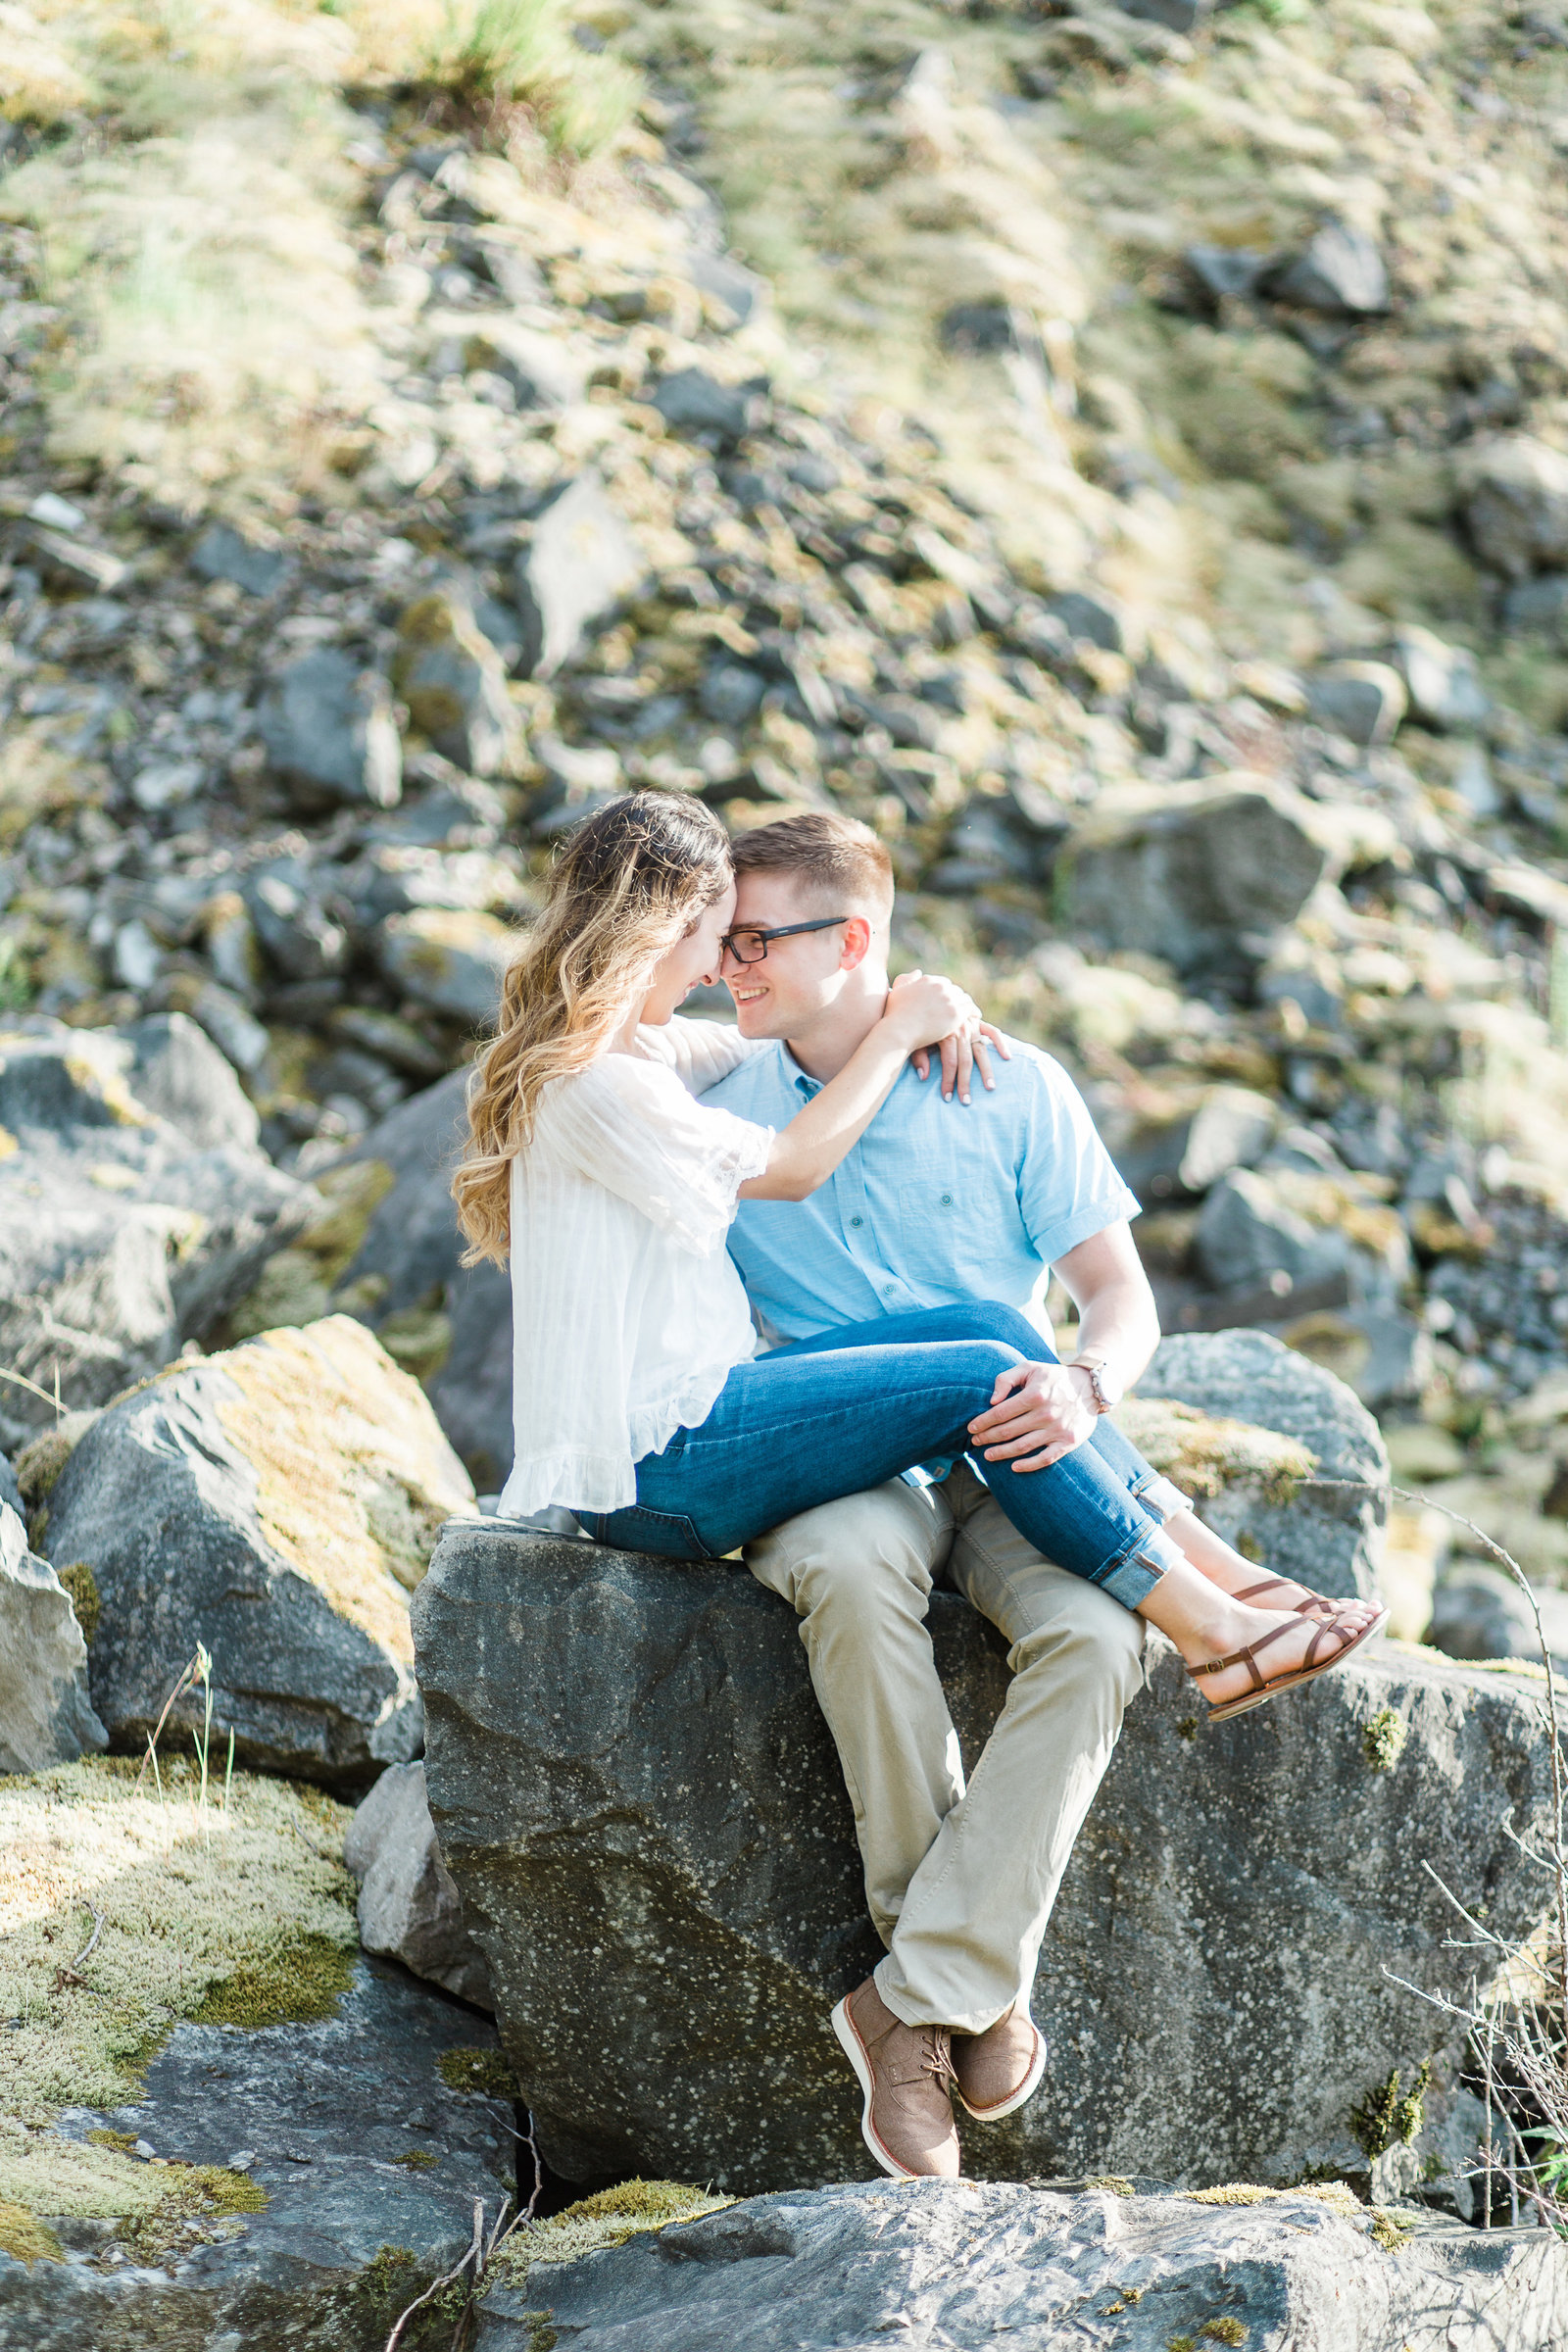 Georgia-Ruth-Photography-Columbia-Gorge-Engagements-LG-23